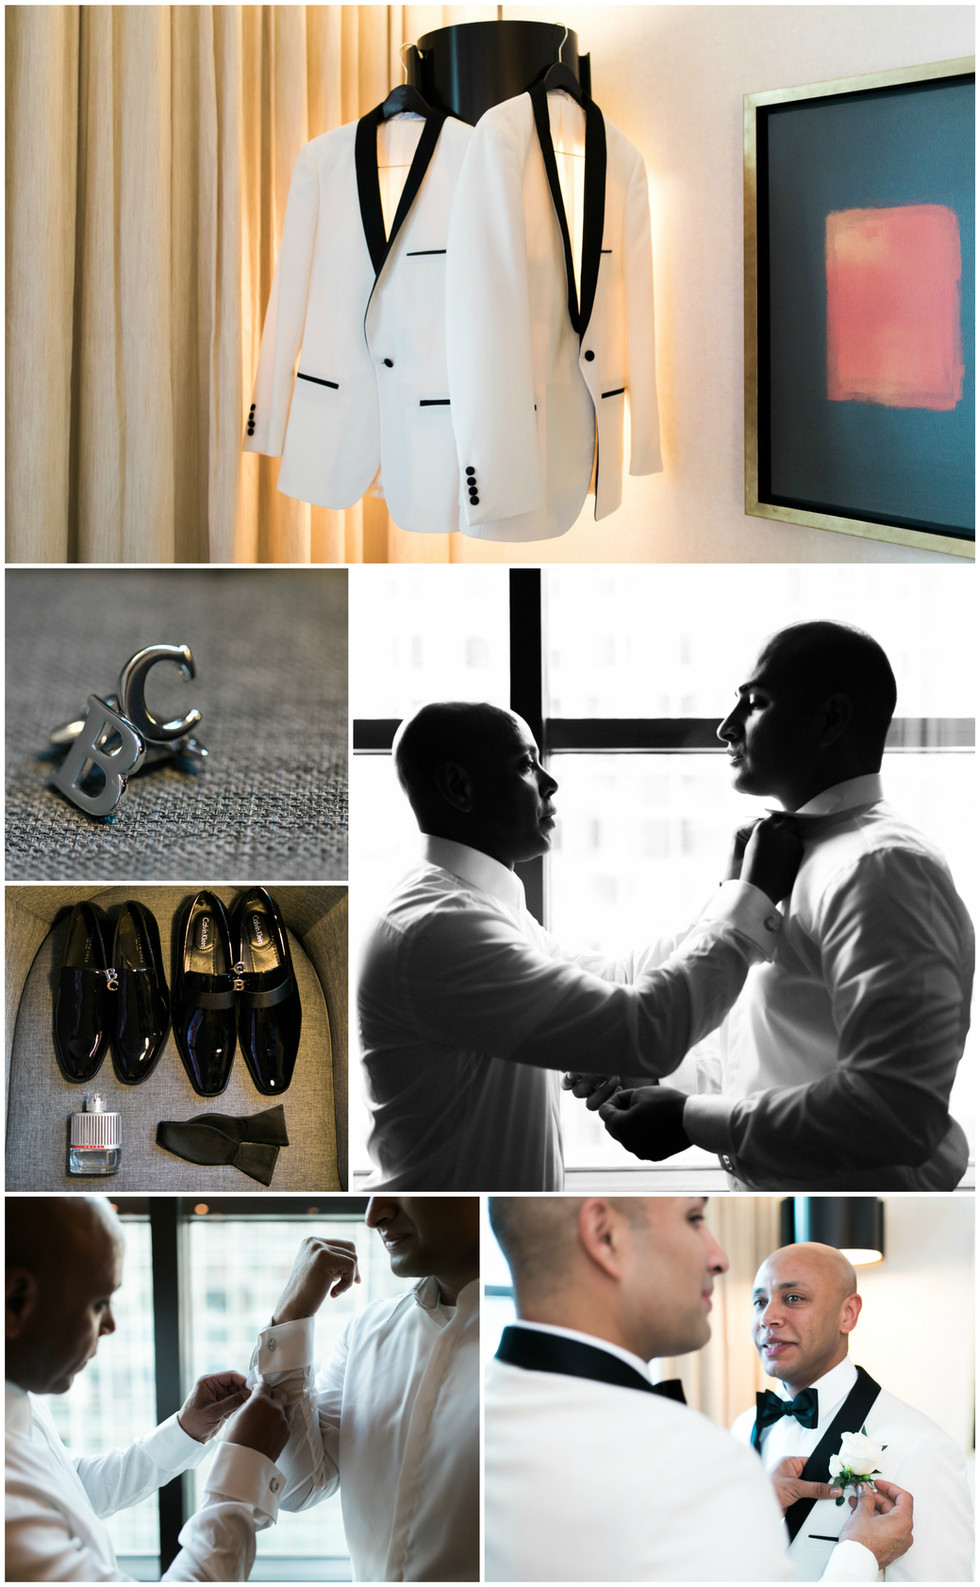 Bruno & Carl | Wedding Photo Journal